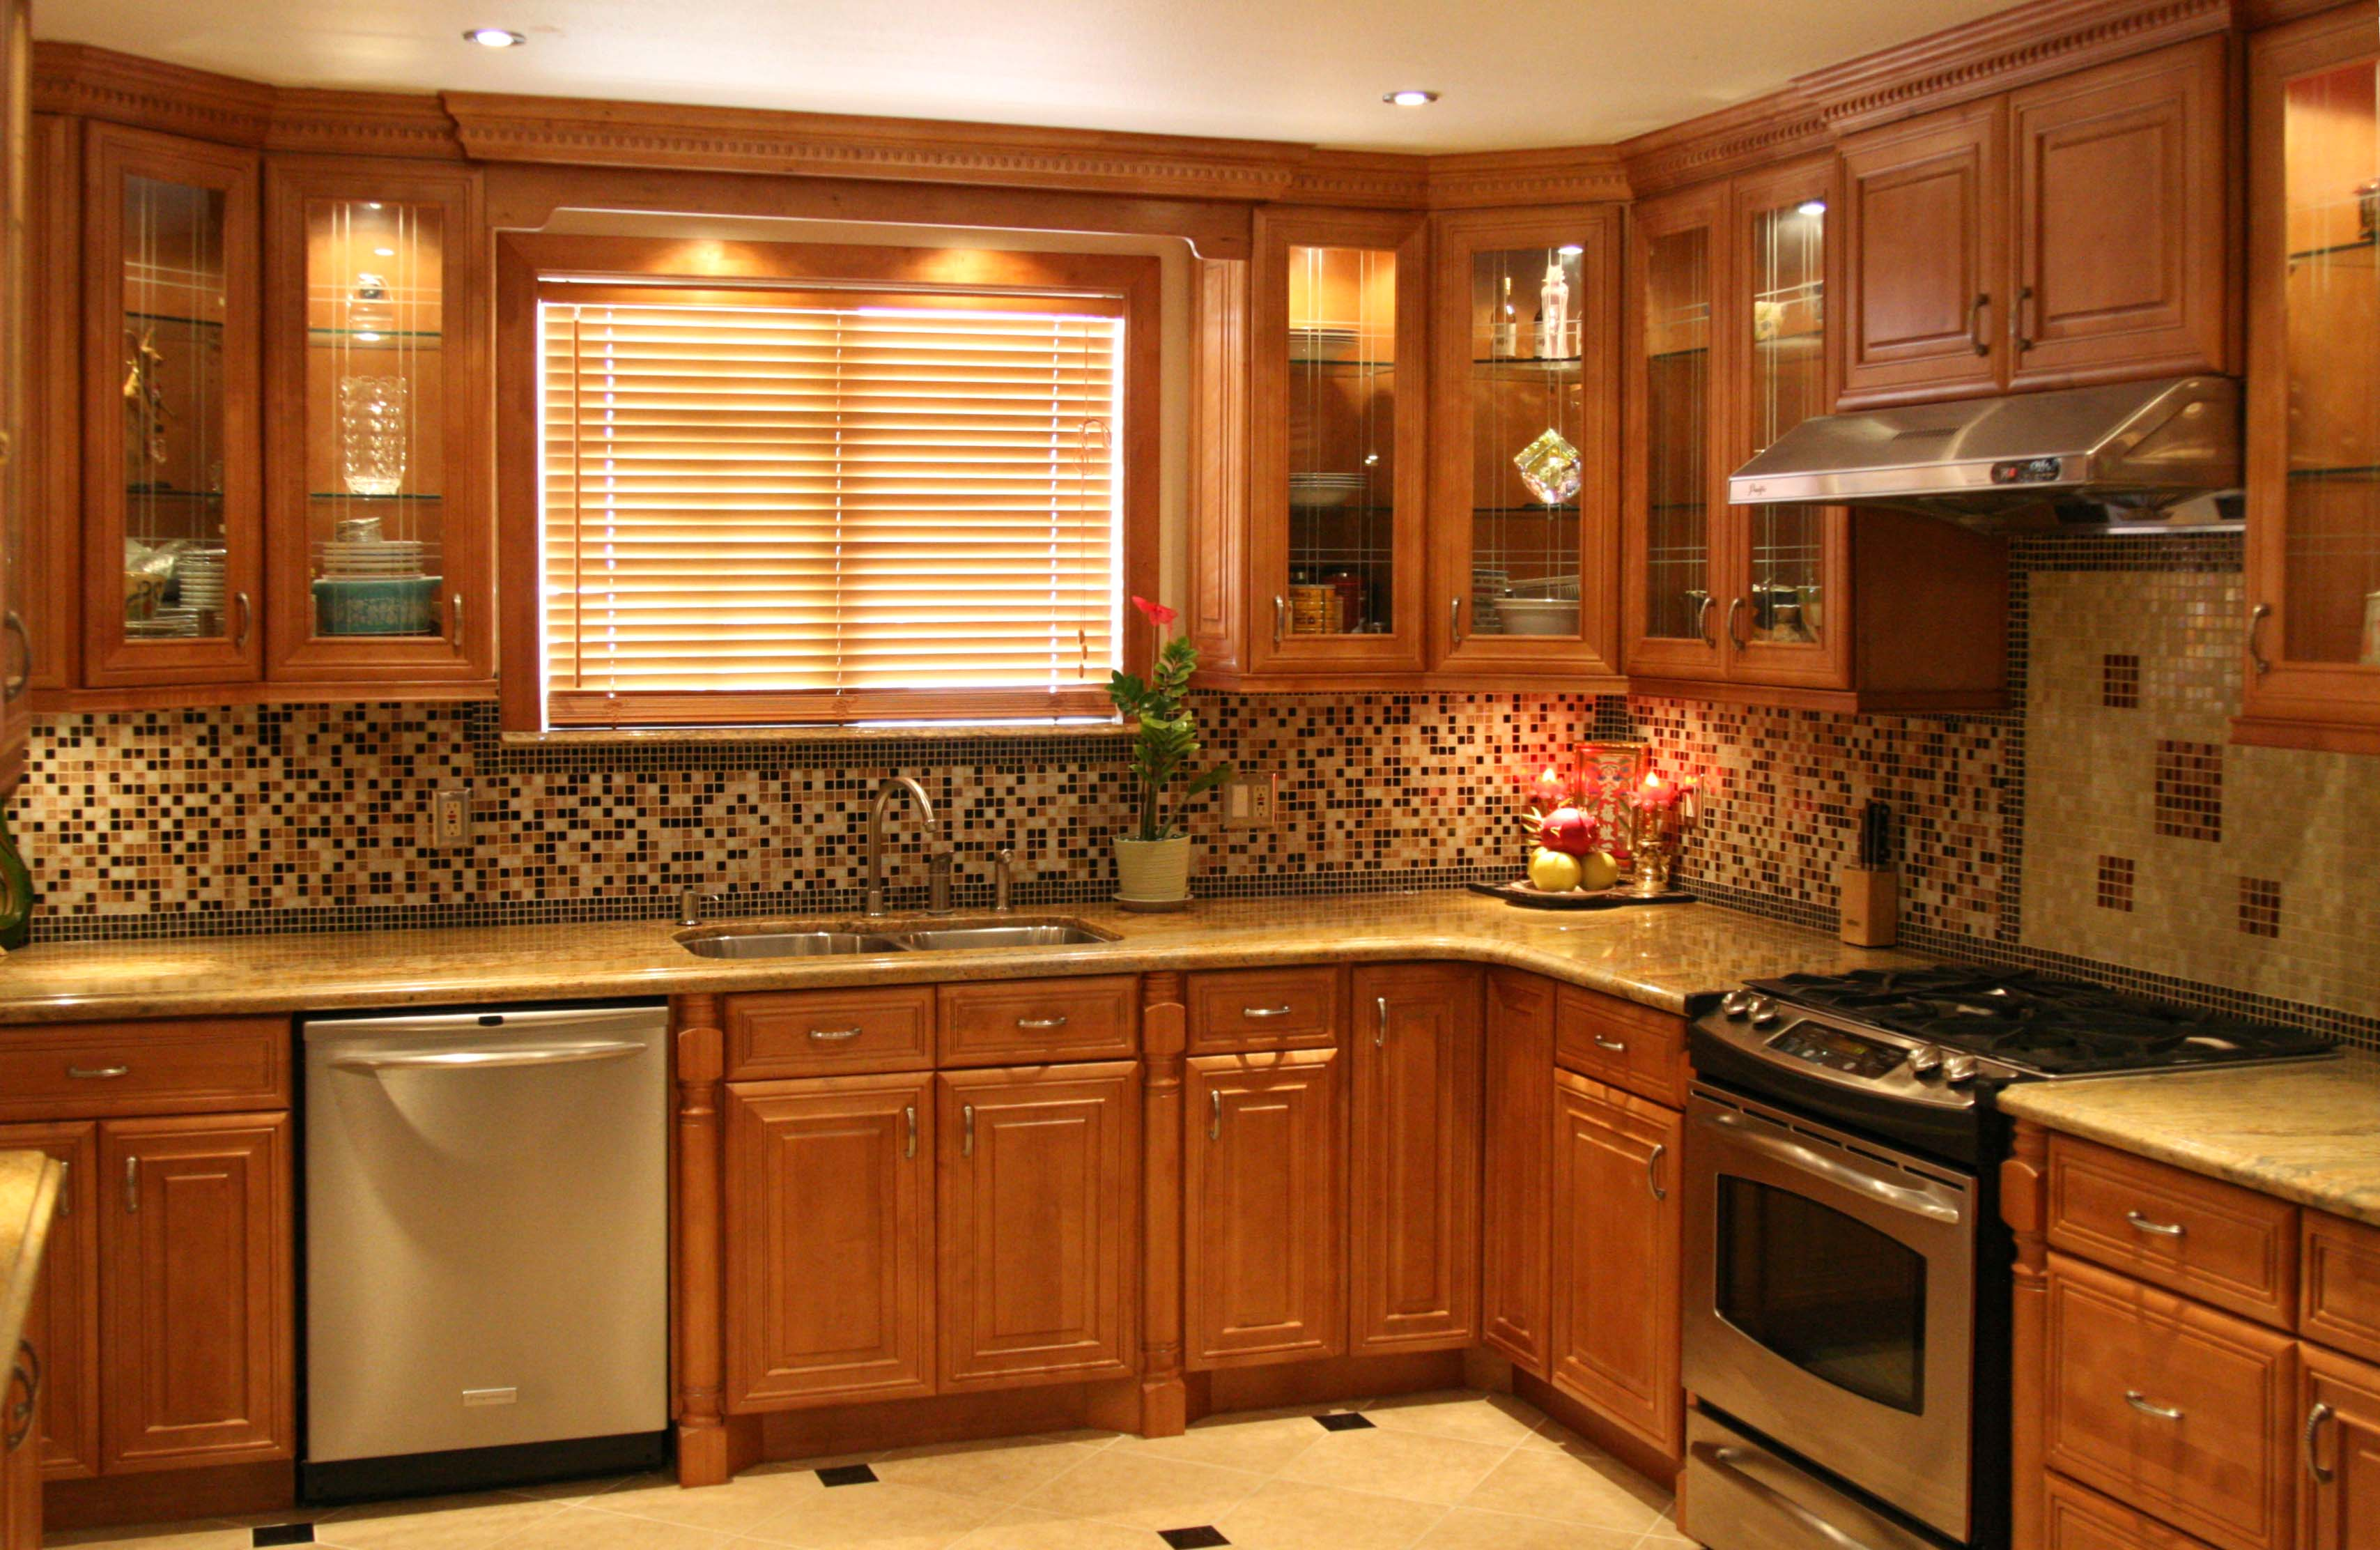 Solid Wood Vs Laminate Kitchen Cabinets Cabinetry